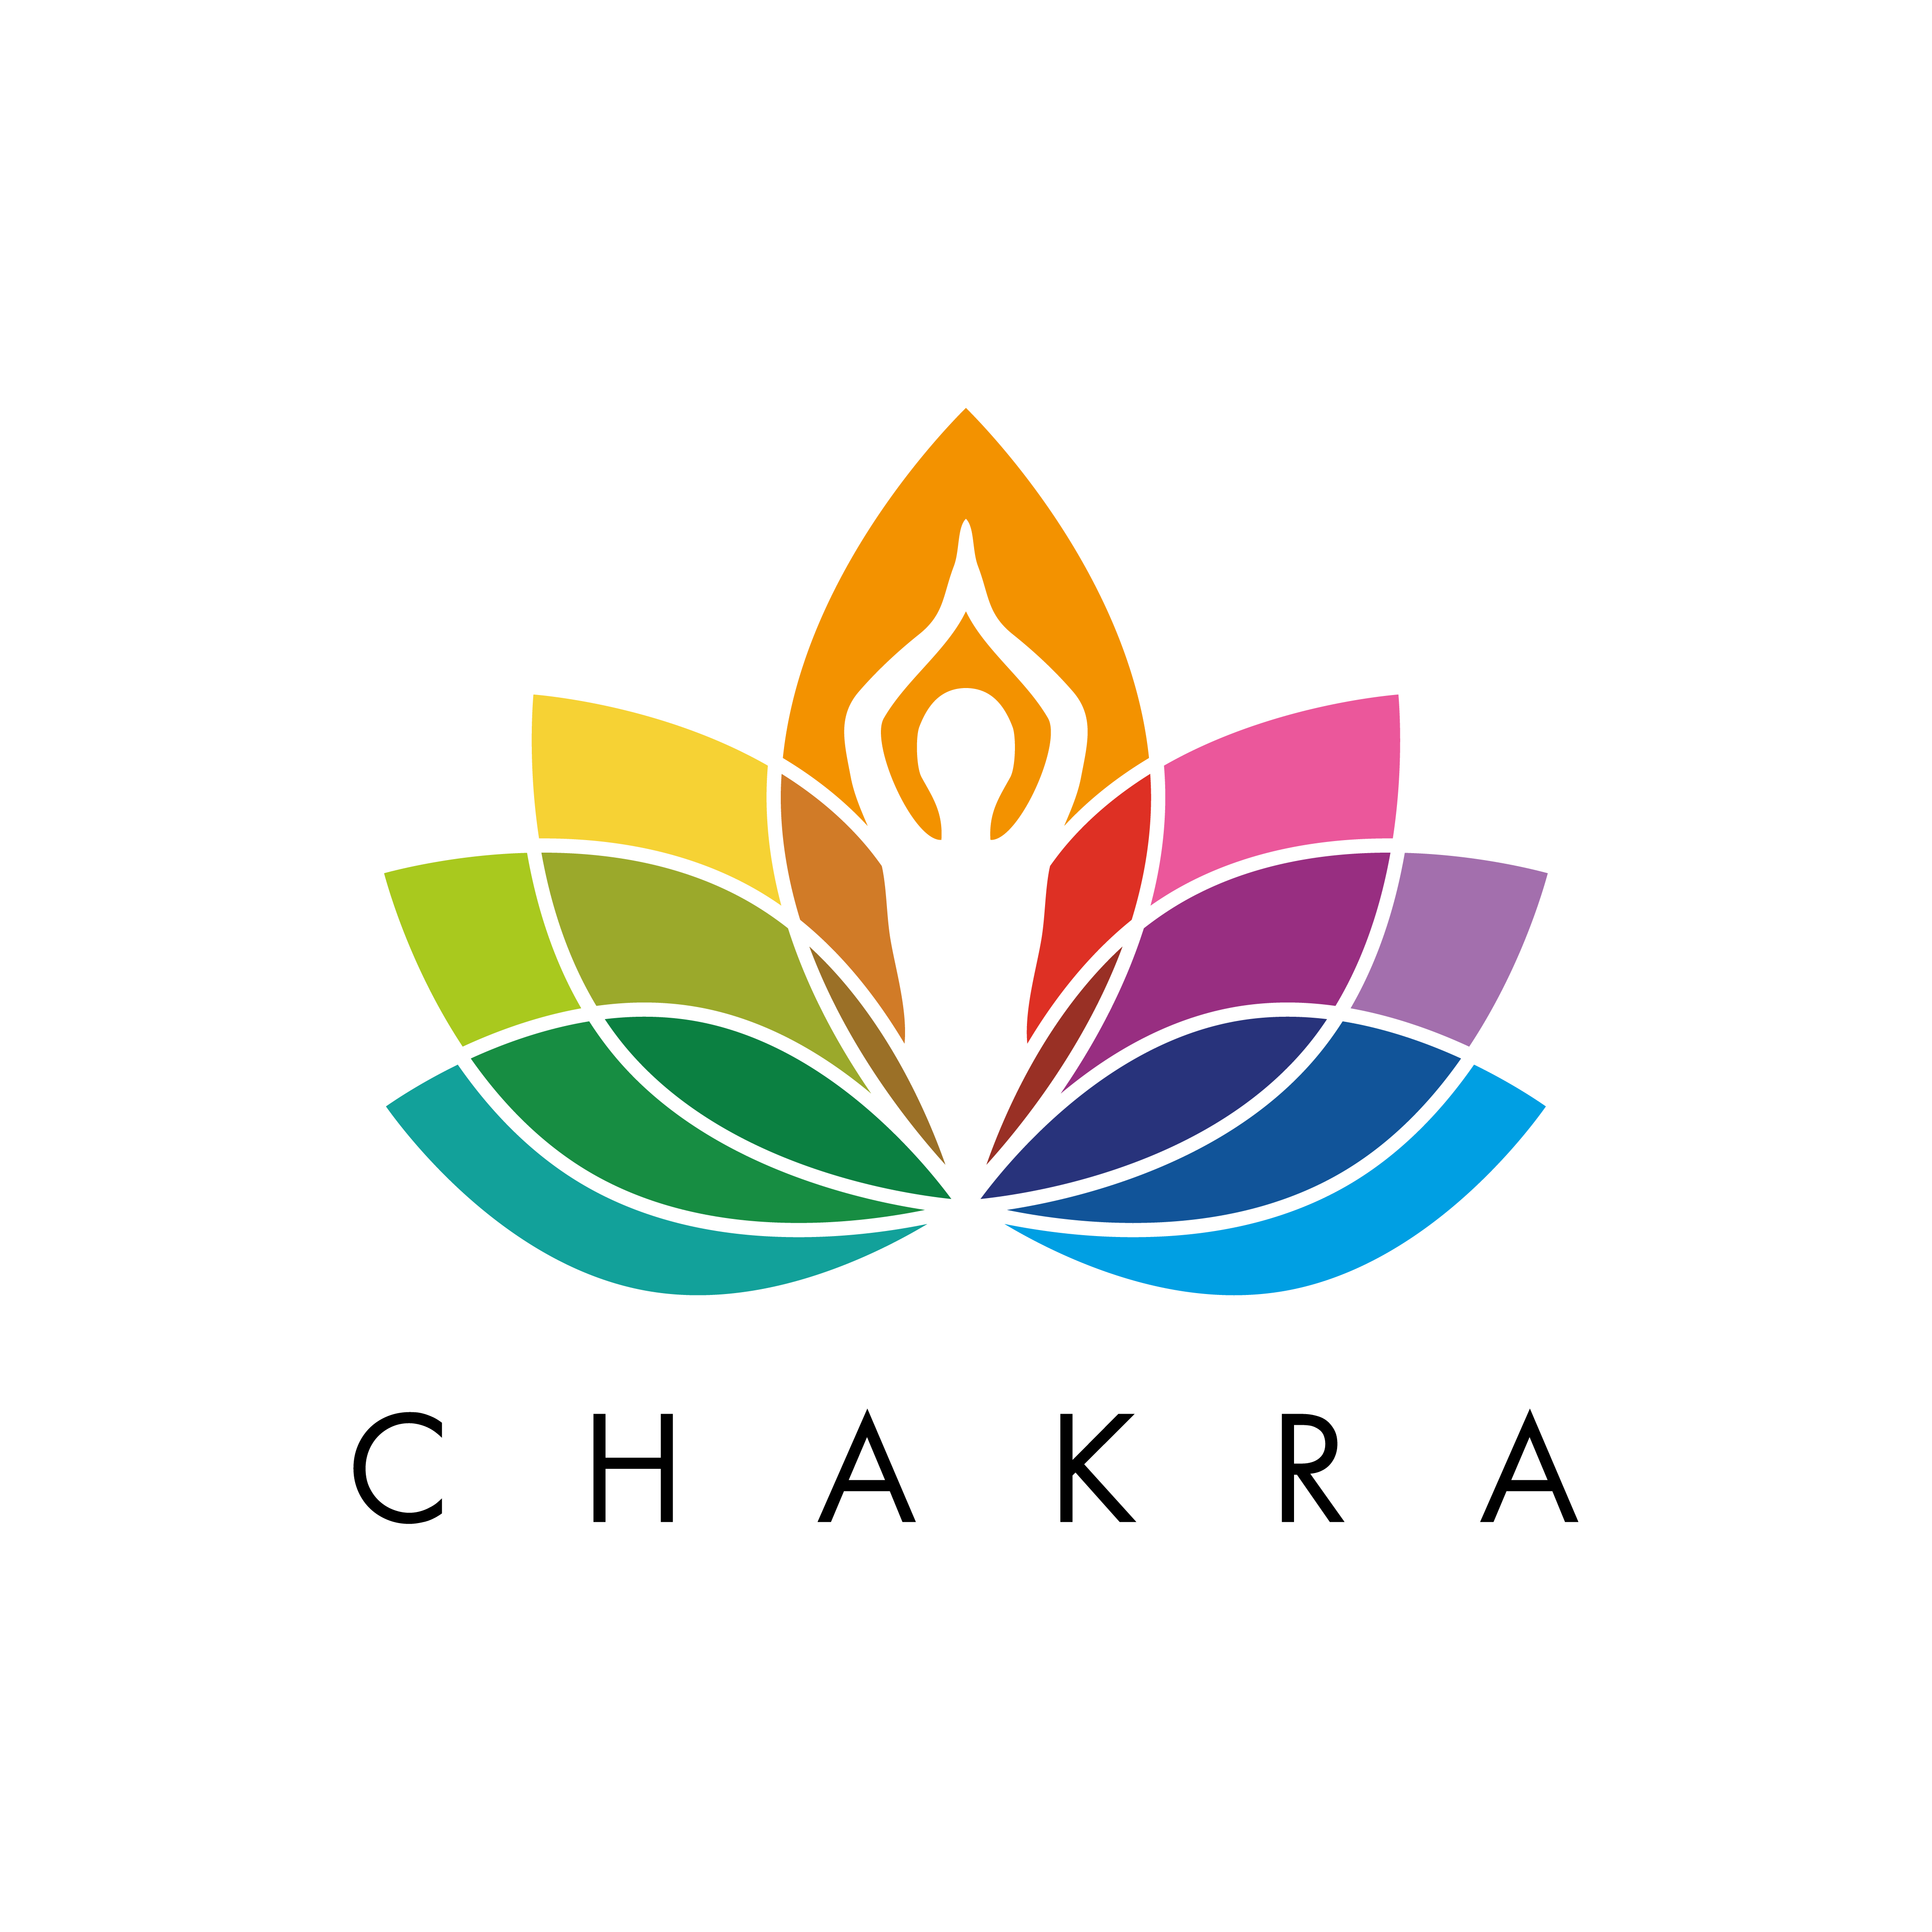 Colorful logo for our Tech Team, Chakra